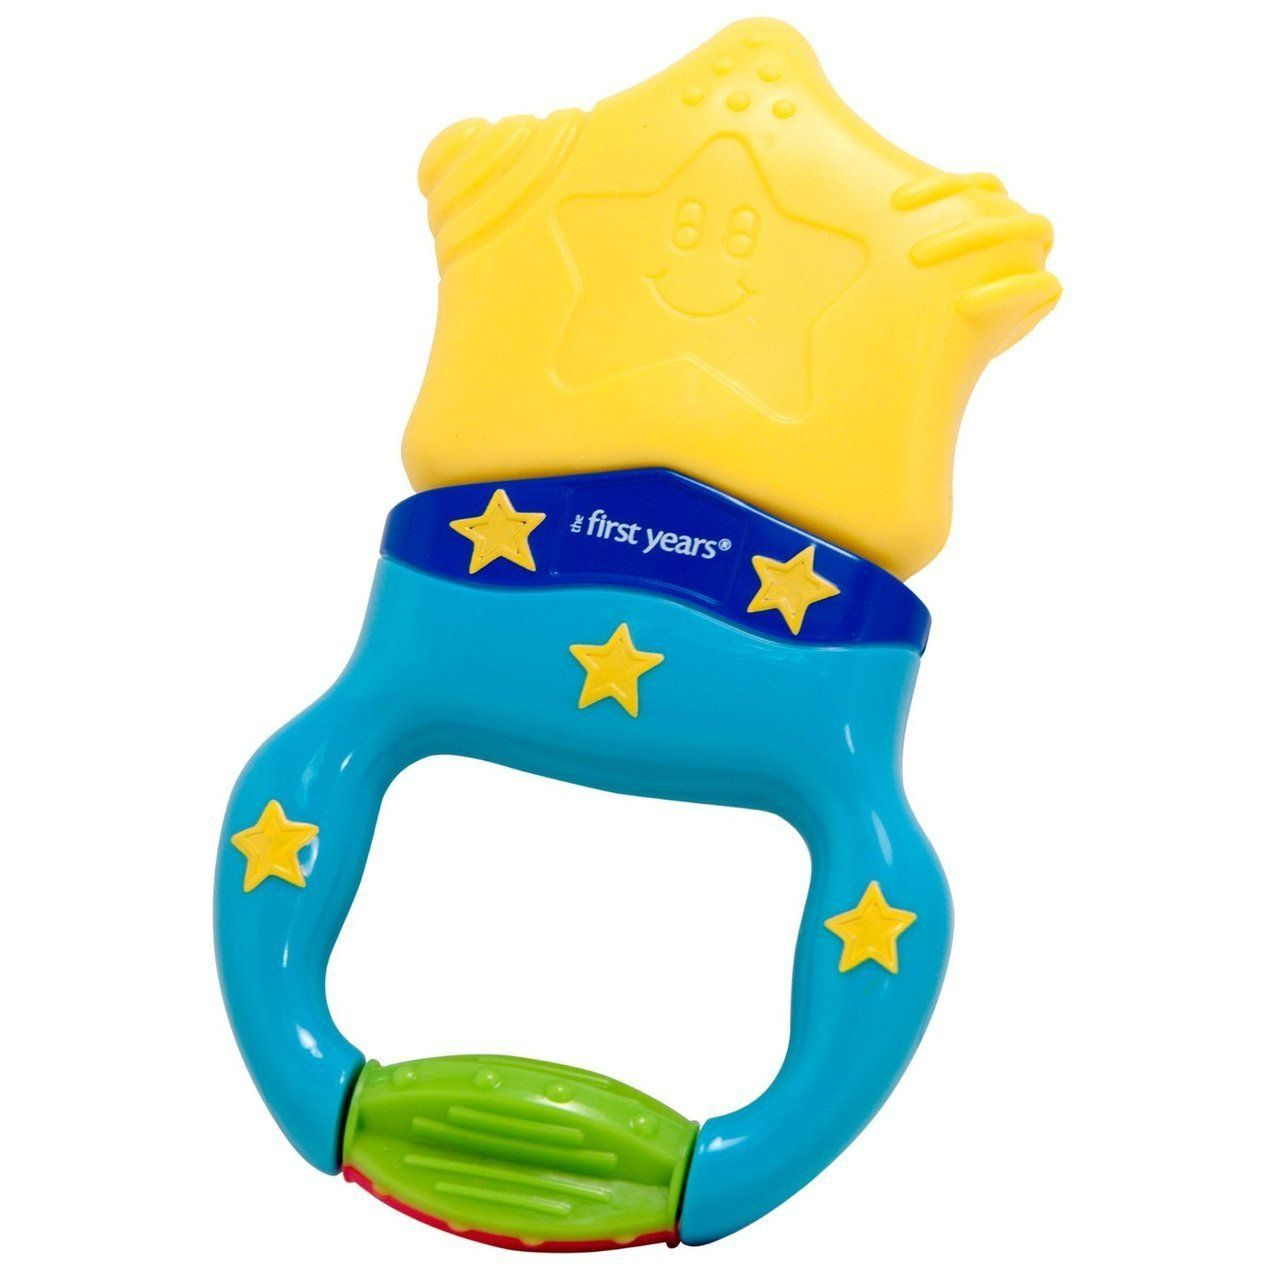 Baby Teethers Babies R Us Massaging Action Teether Baby Products Baby Teethers